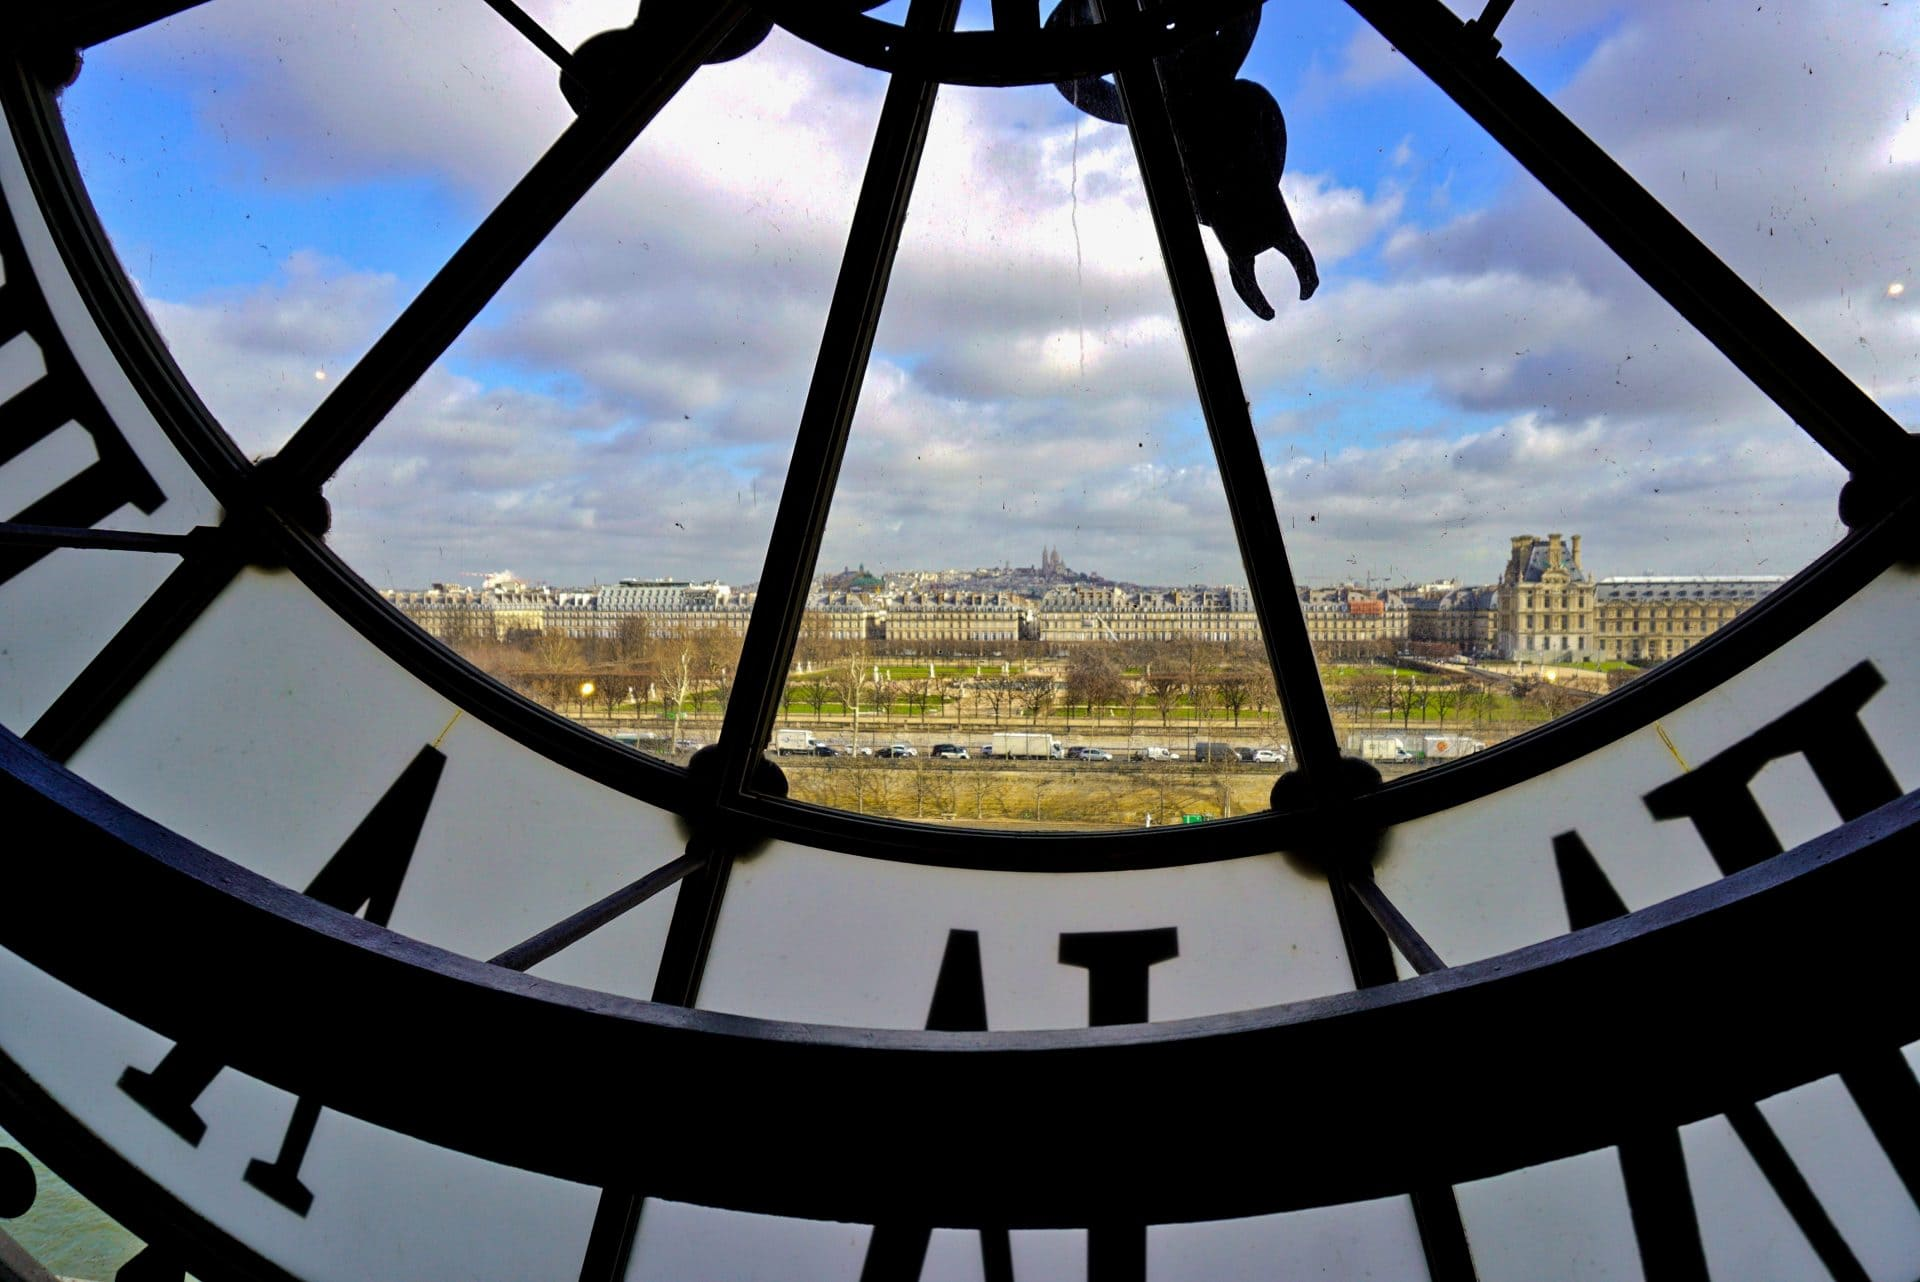 Musee d'Orsay, Paris, France - Experiencing the Globe